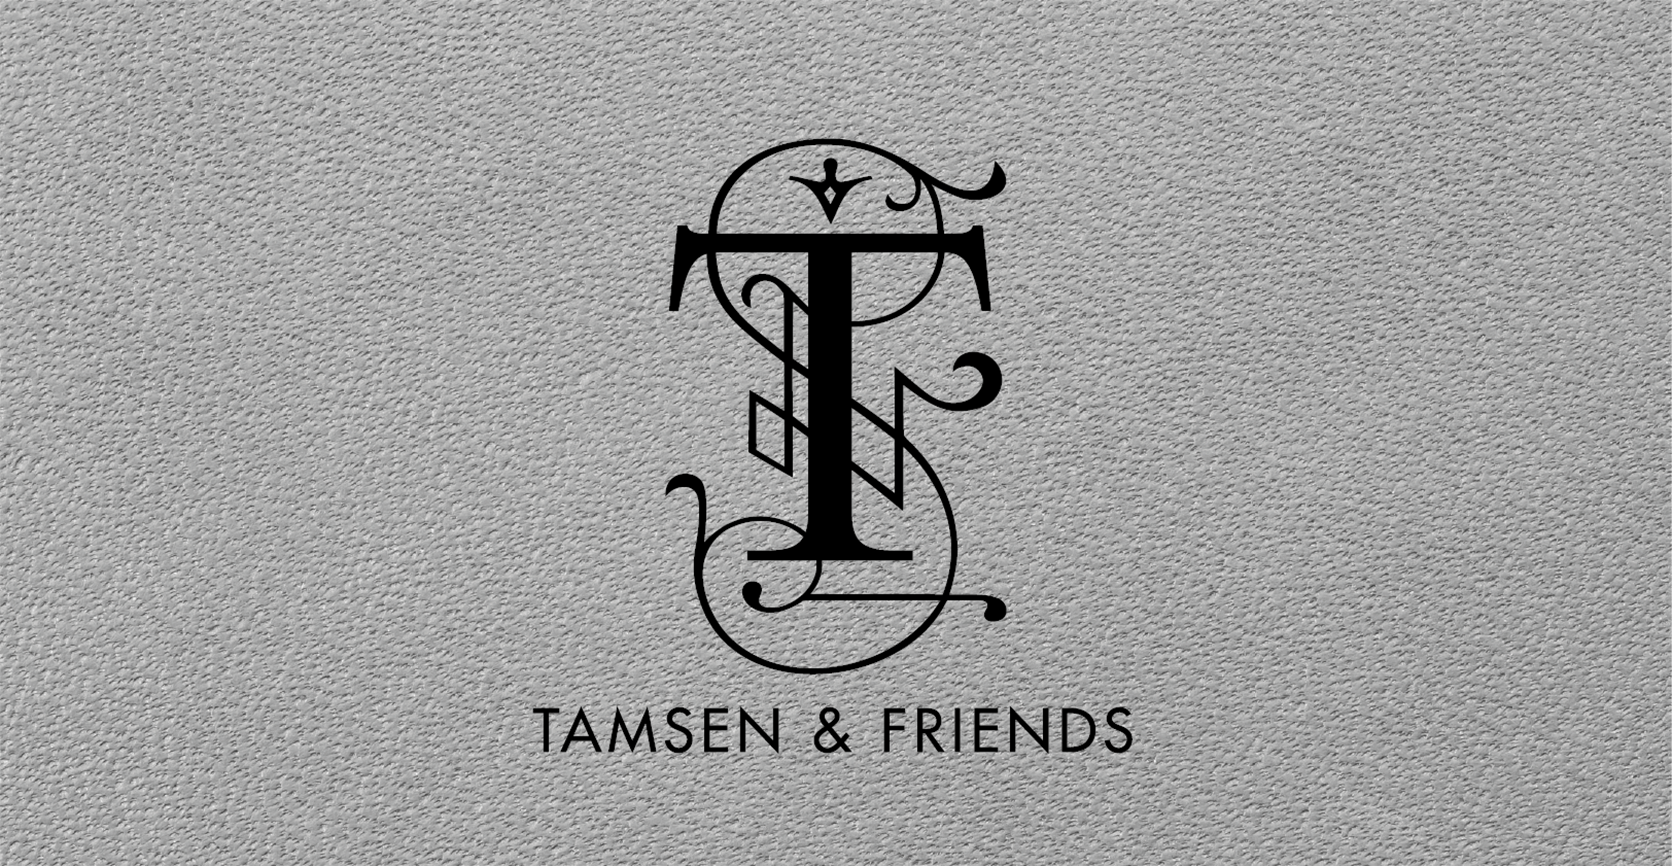 tamsen-friends-logotyp-design